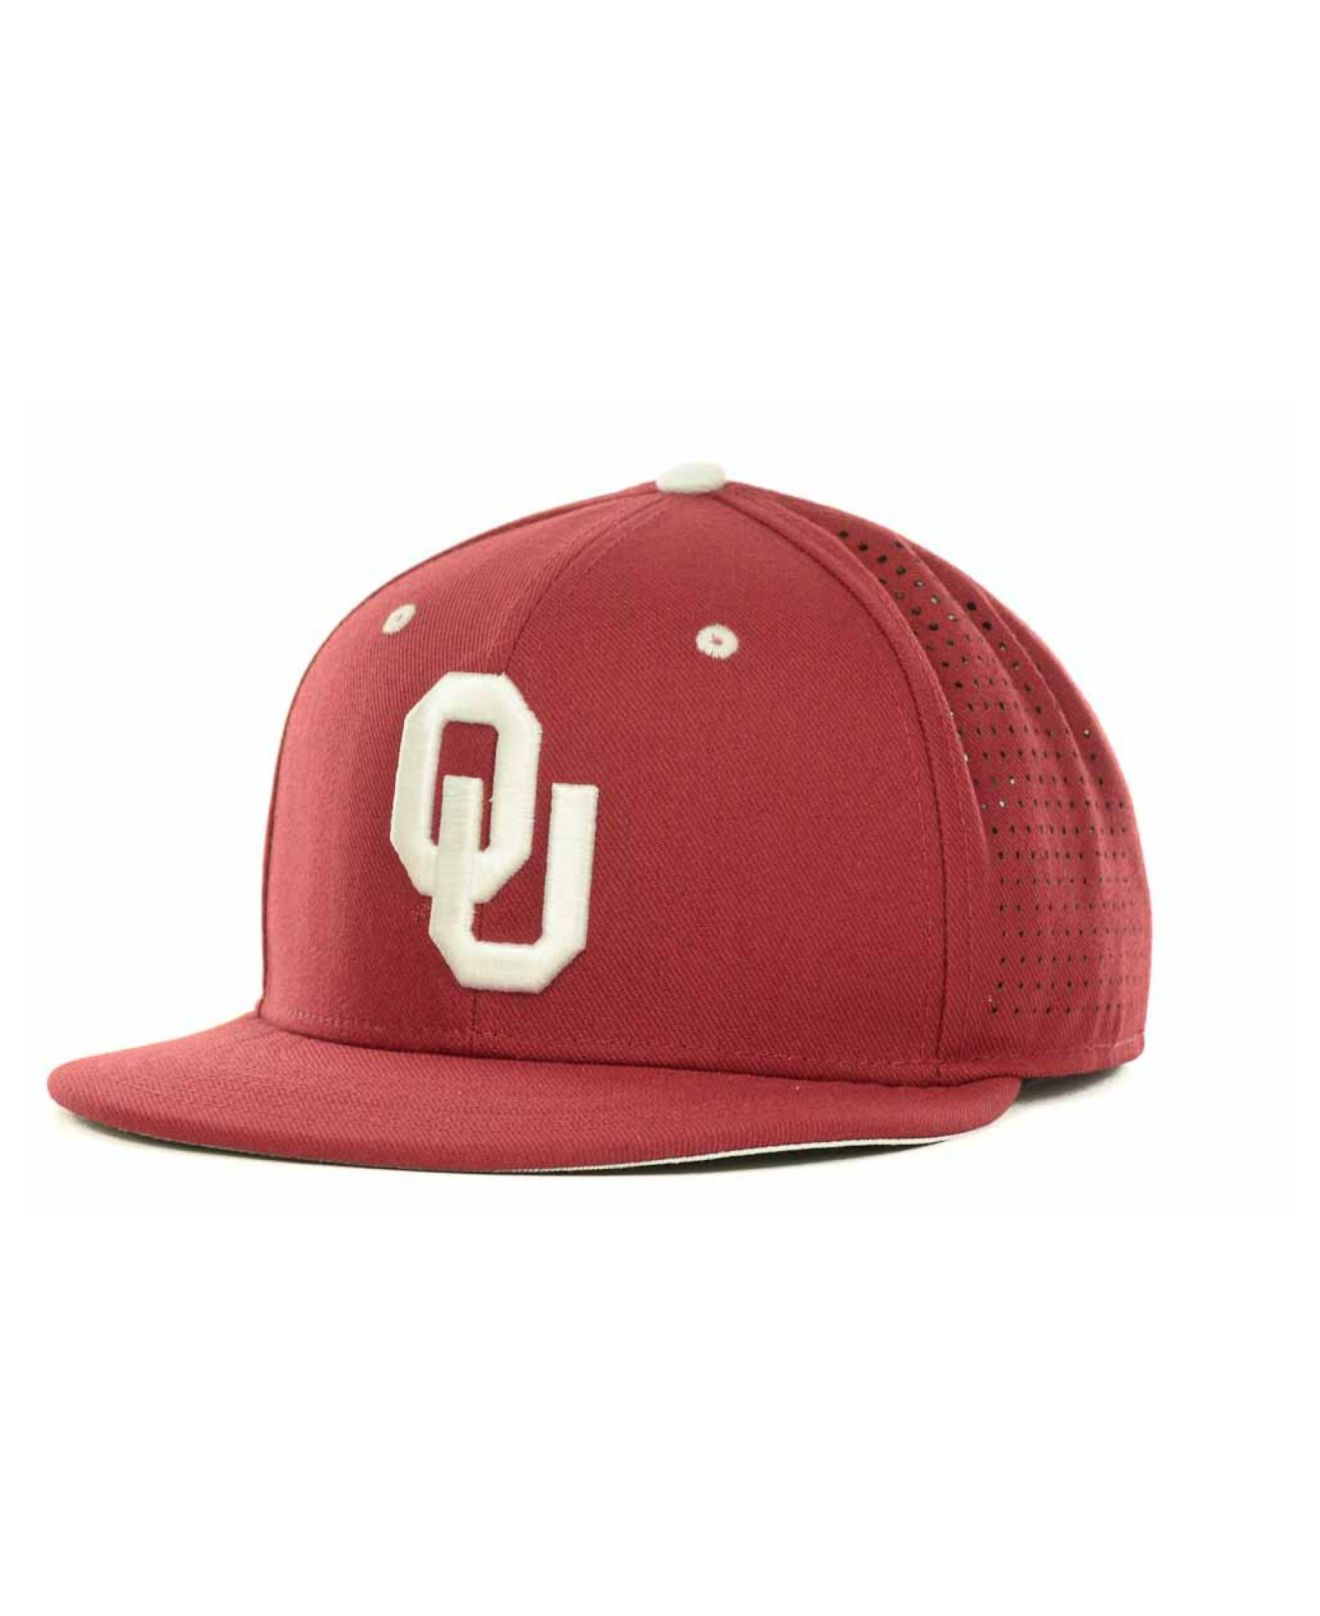 huge selection of c0197 49acc Nike Oklahoma Sooners Ncaa Authentic Vapor Fitted Cap in Red for Men ...